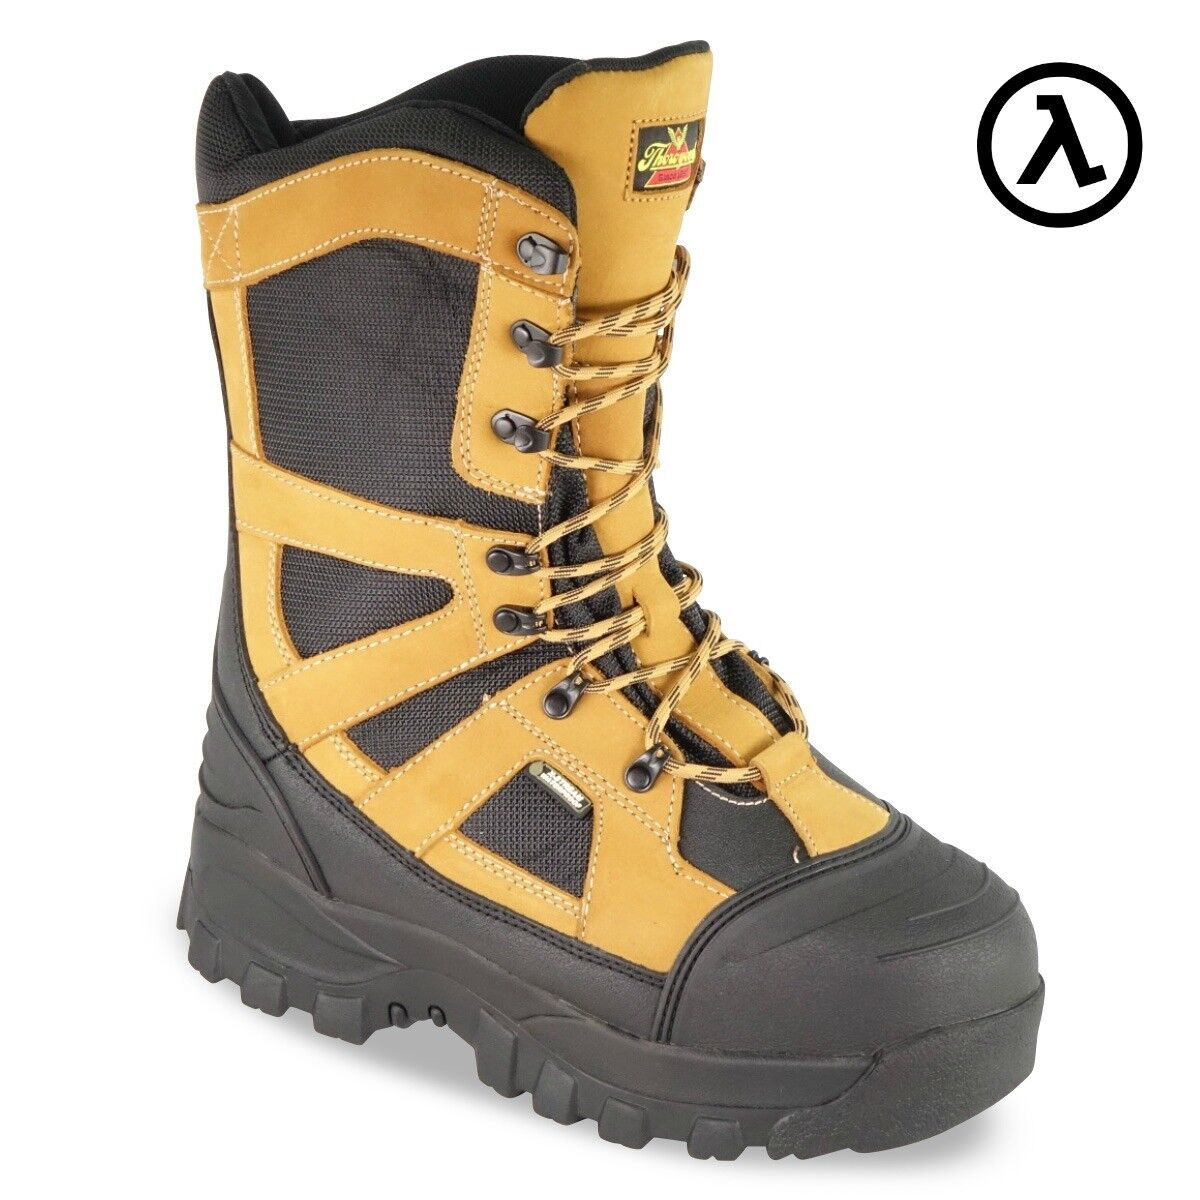 THOROGOOD INSULATED OUTDOOR ENDEAVOR EXTREME WP 2400G INSULATED THOROGOOD BOOTS 861-4071 - ALL SIZES 547729